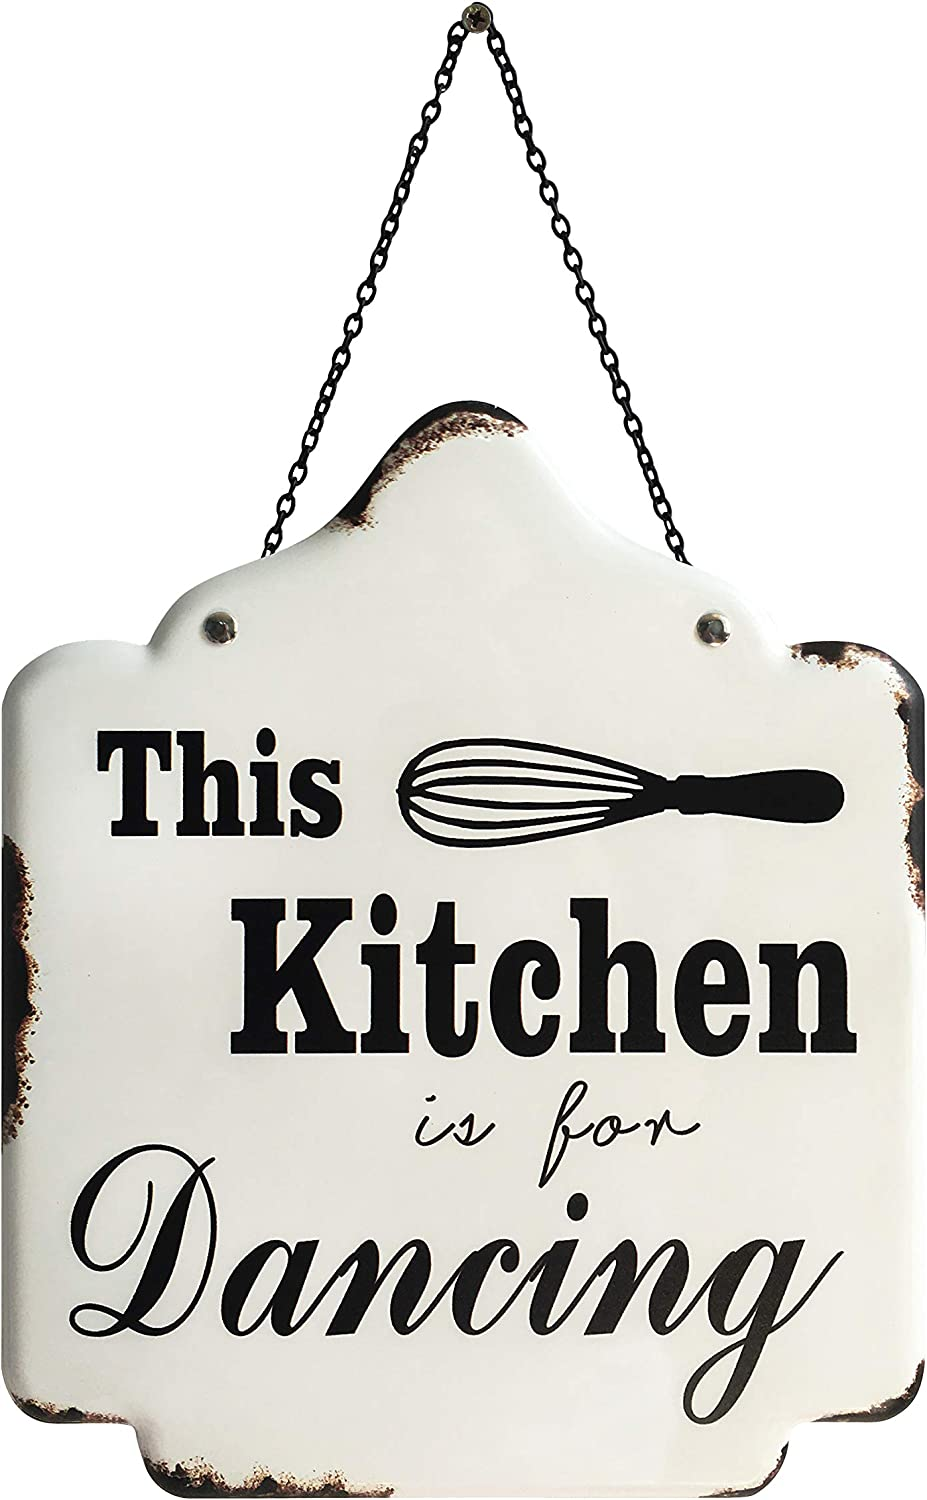 Pridecreation Kitchen Signs, 10x12 inch Rustic Farmhouse Enamel Metal Wall Hanging Art Decor Prints - The Kitchen is for Dancing (White)